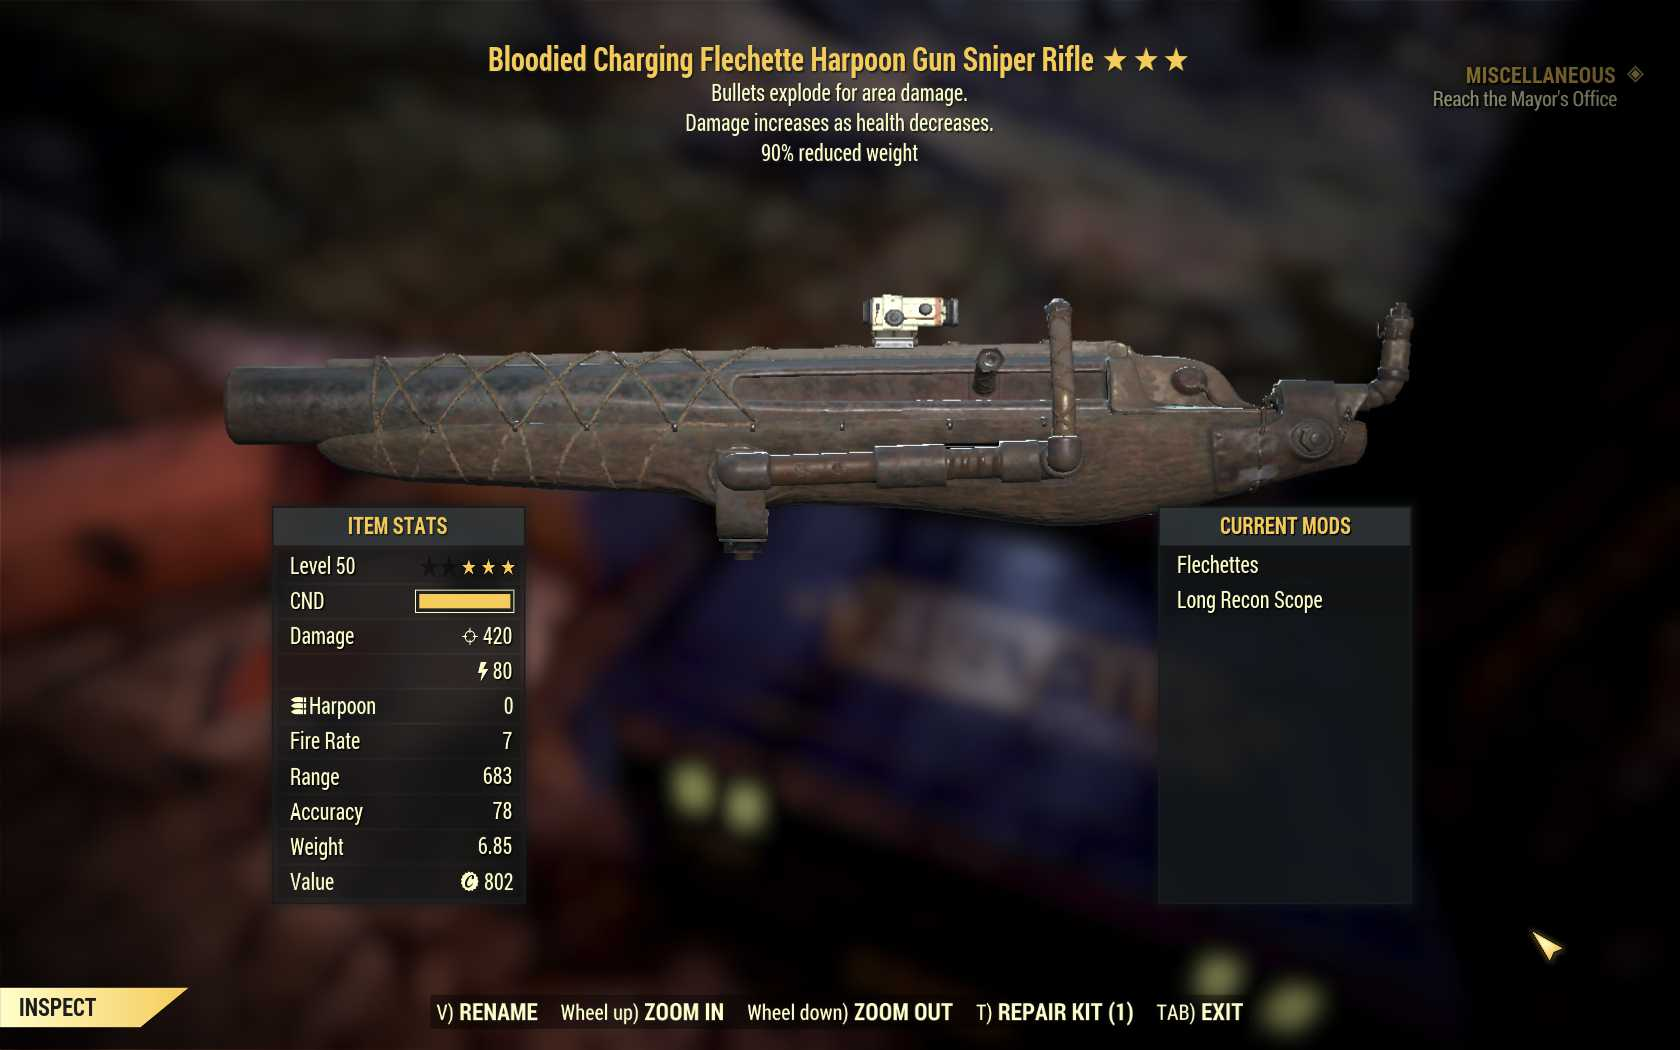 [Glitched weapon] Bloodied Explosive Harpoon Sniper Rifle (90% reduced weight)